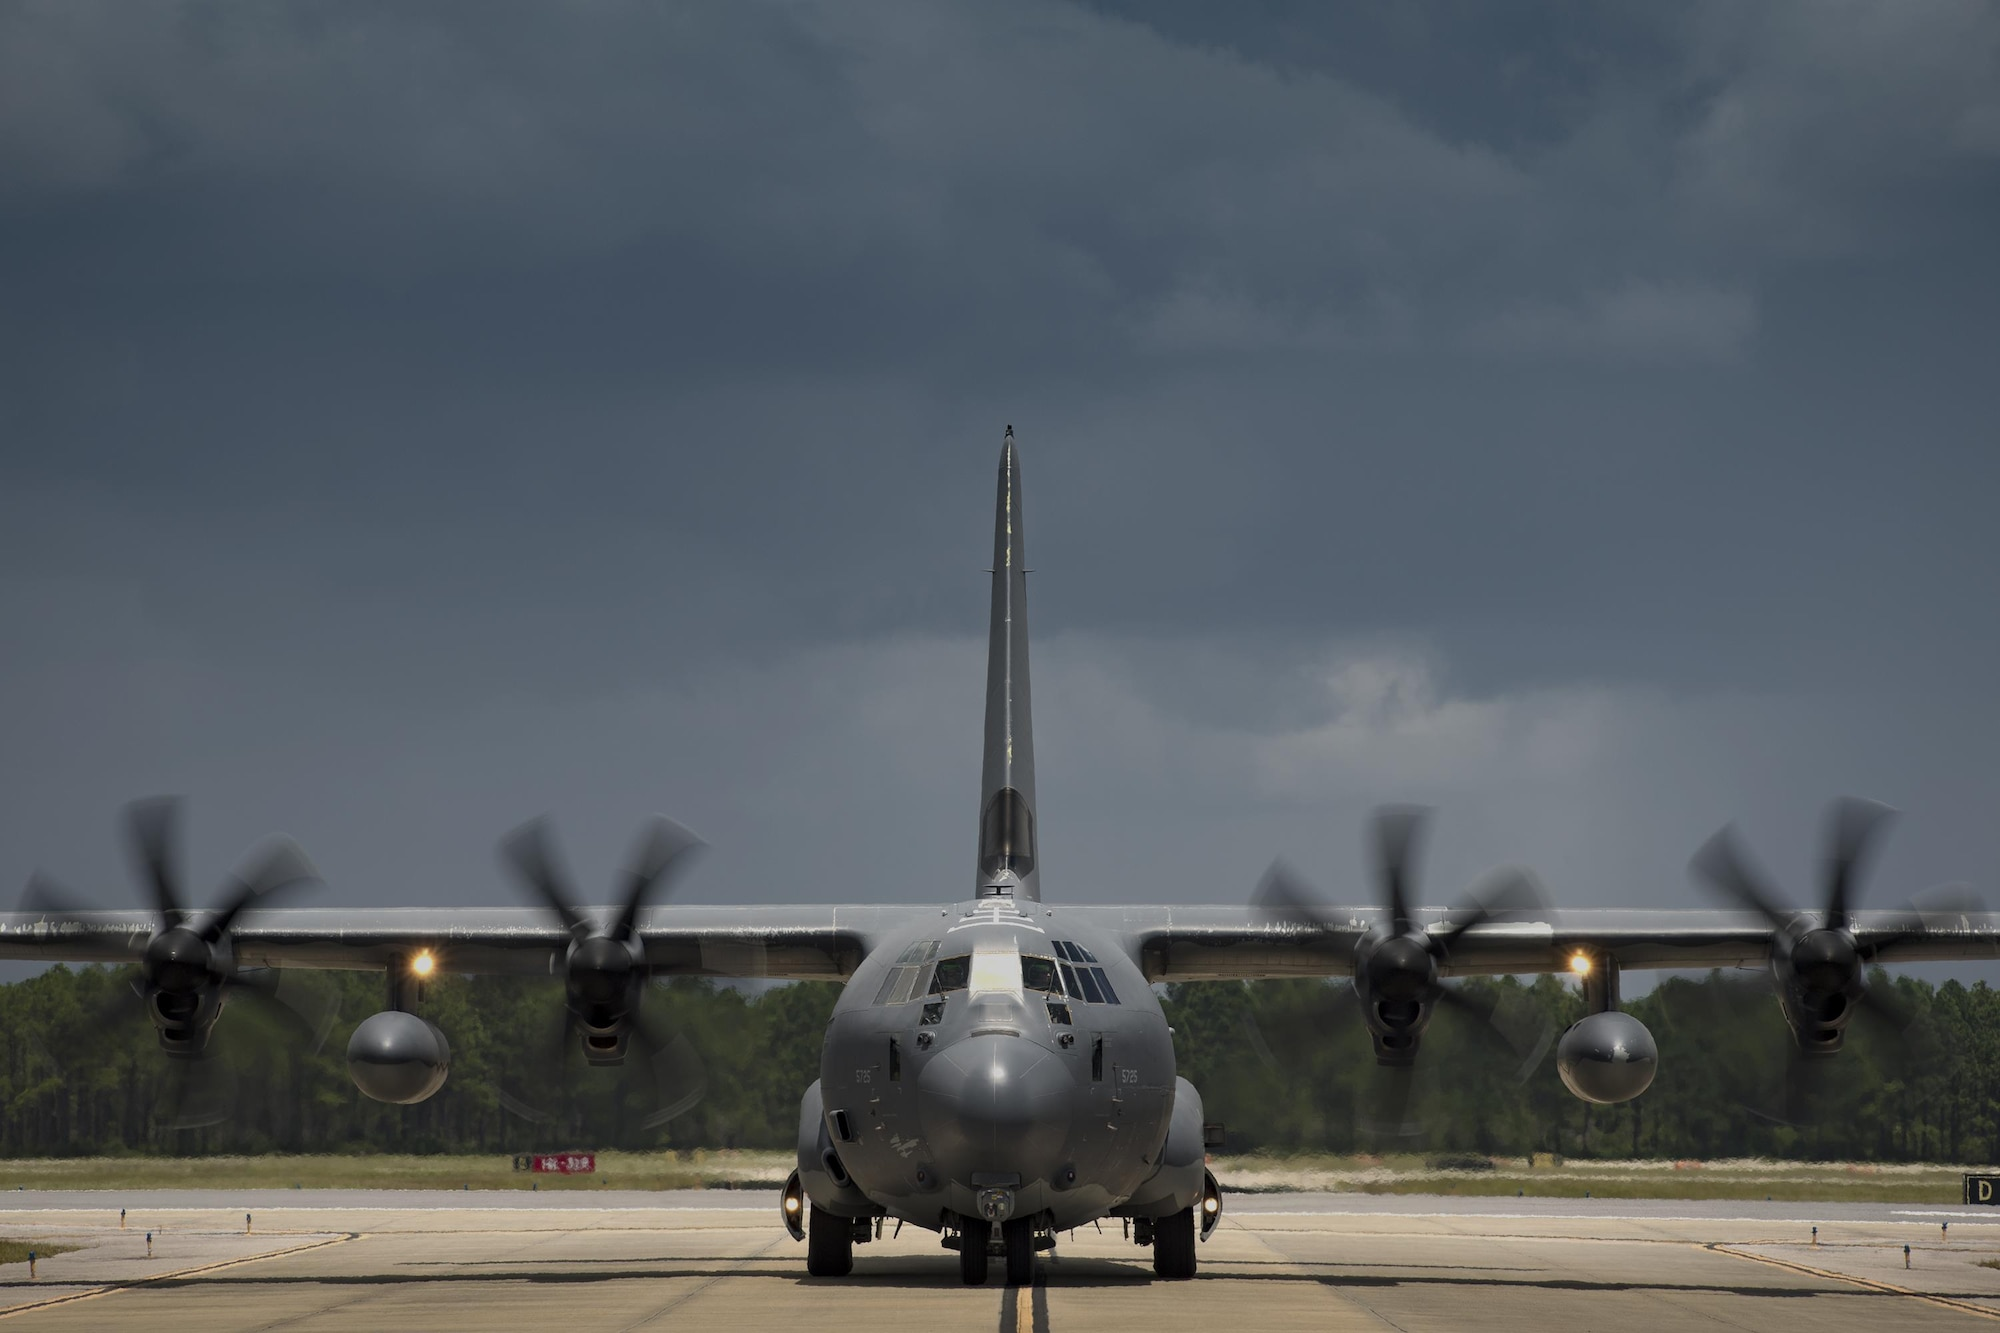 An HC-130J Combat King II from the 71st Rescue Squadron taxis towards the parking ramp during Stealth Guardian, Aug. 9, 2017, at Tyndall Air Force Base, Fla.